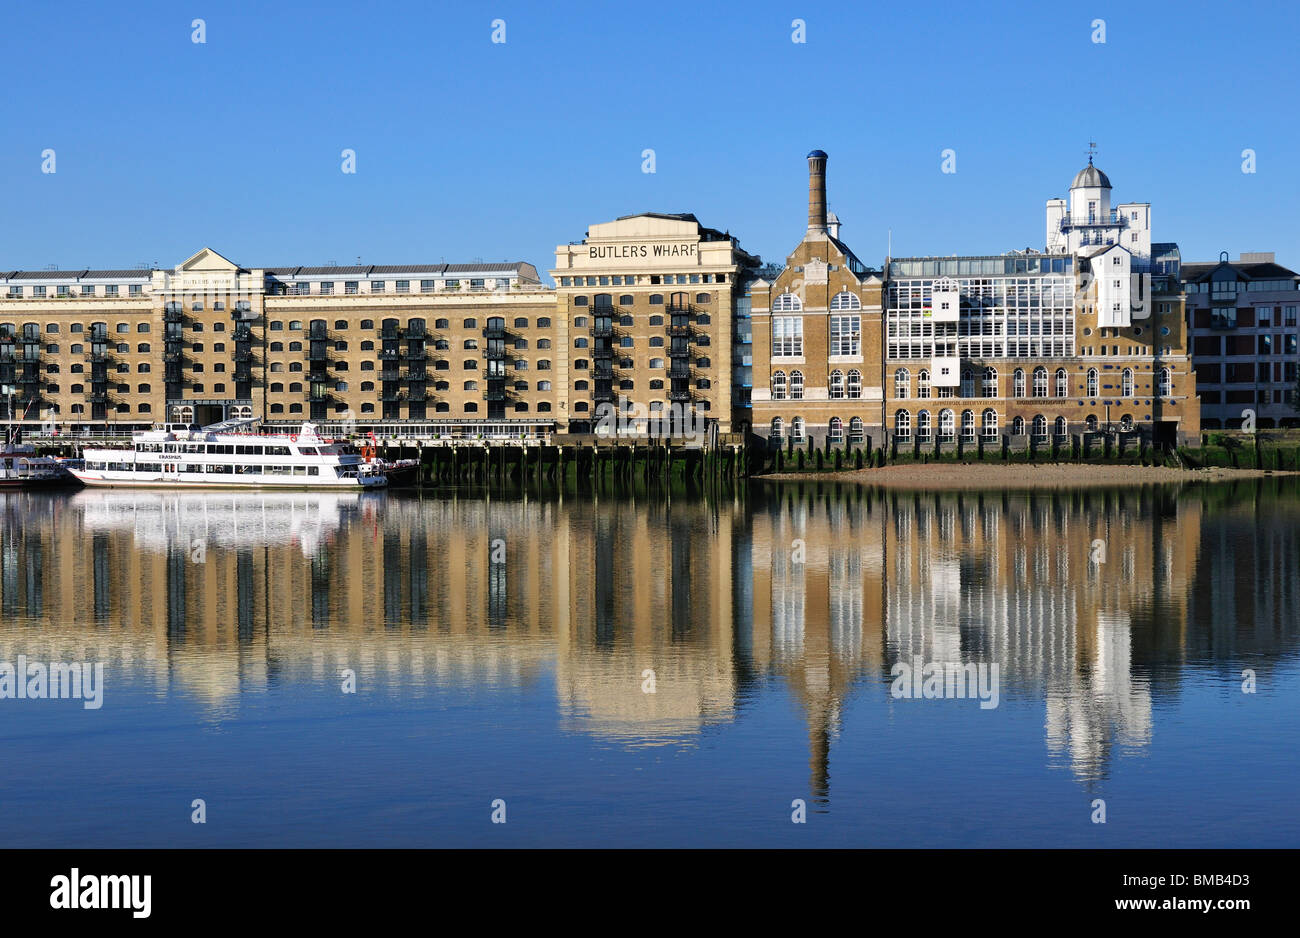 Butlers Wharf and Shad Thames, Southwark, London SE1, United Kingdom - Stock Image